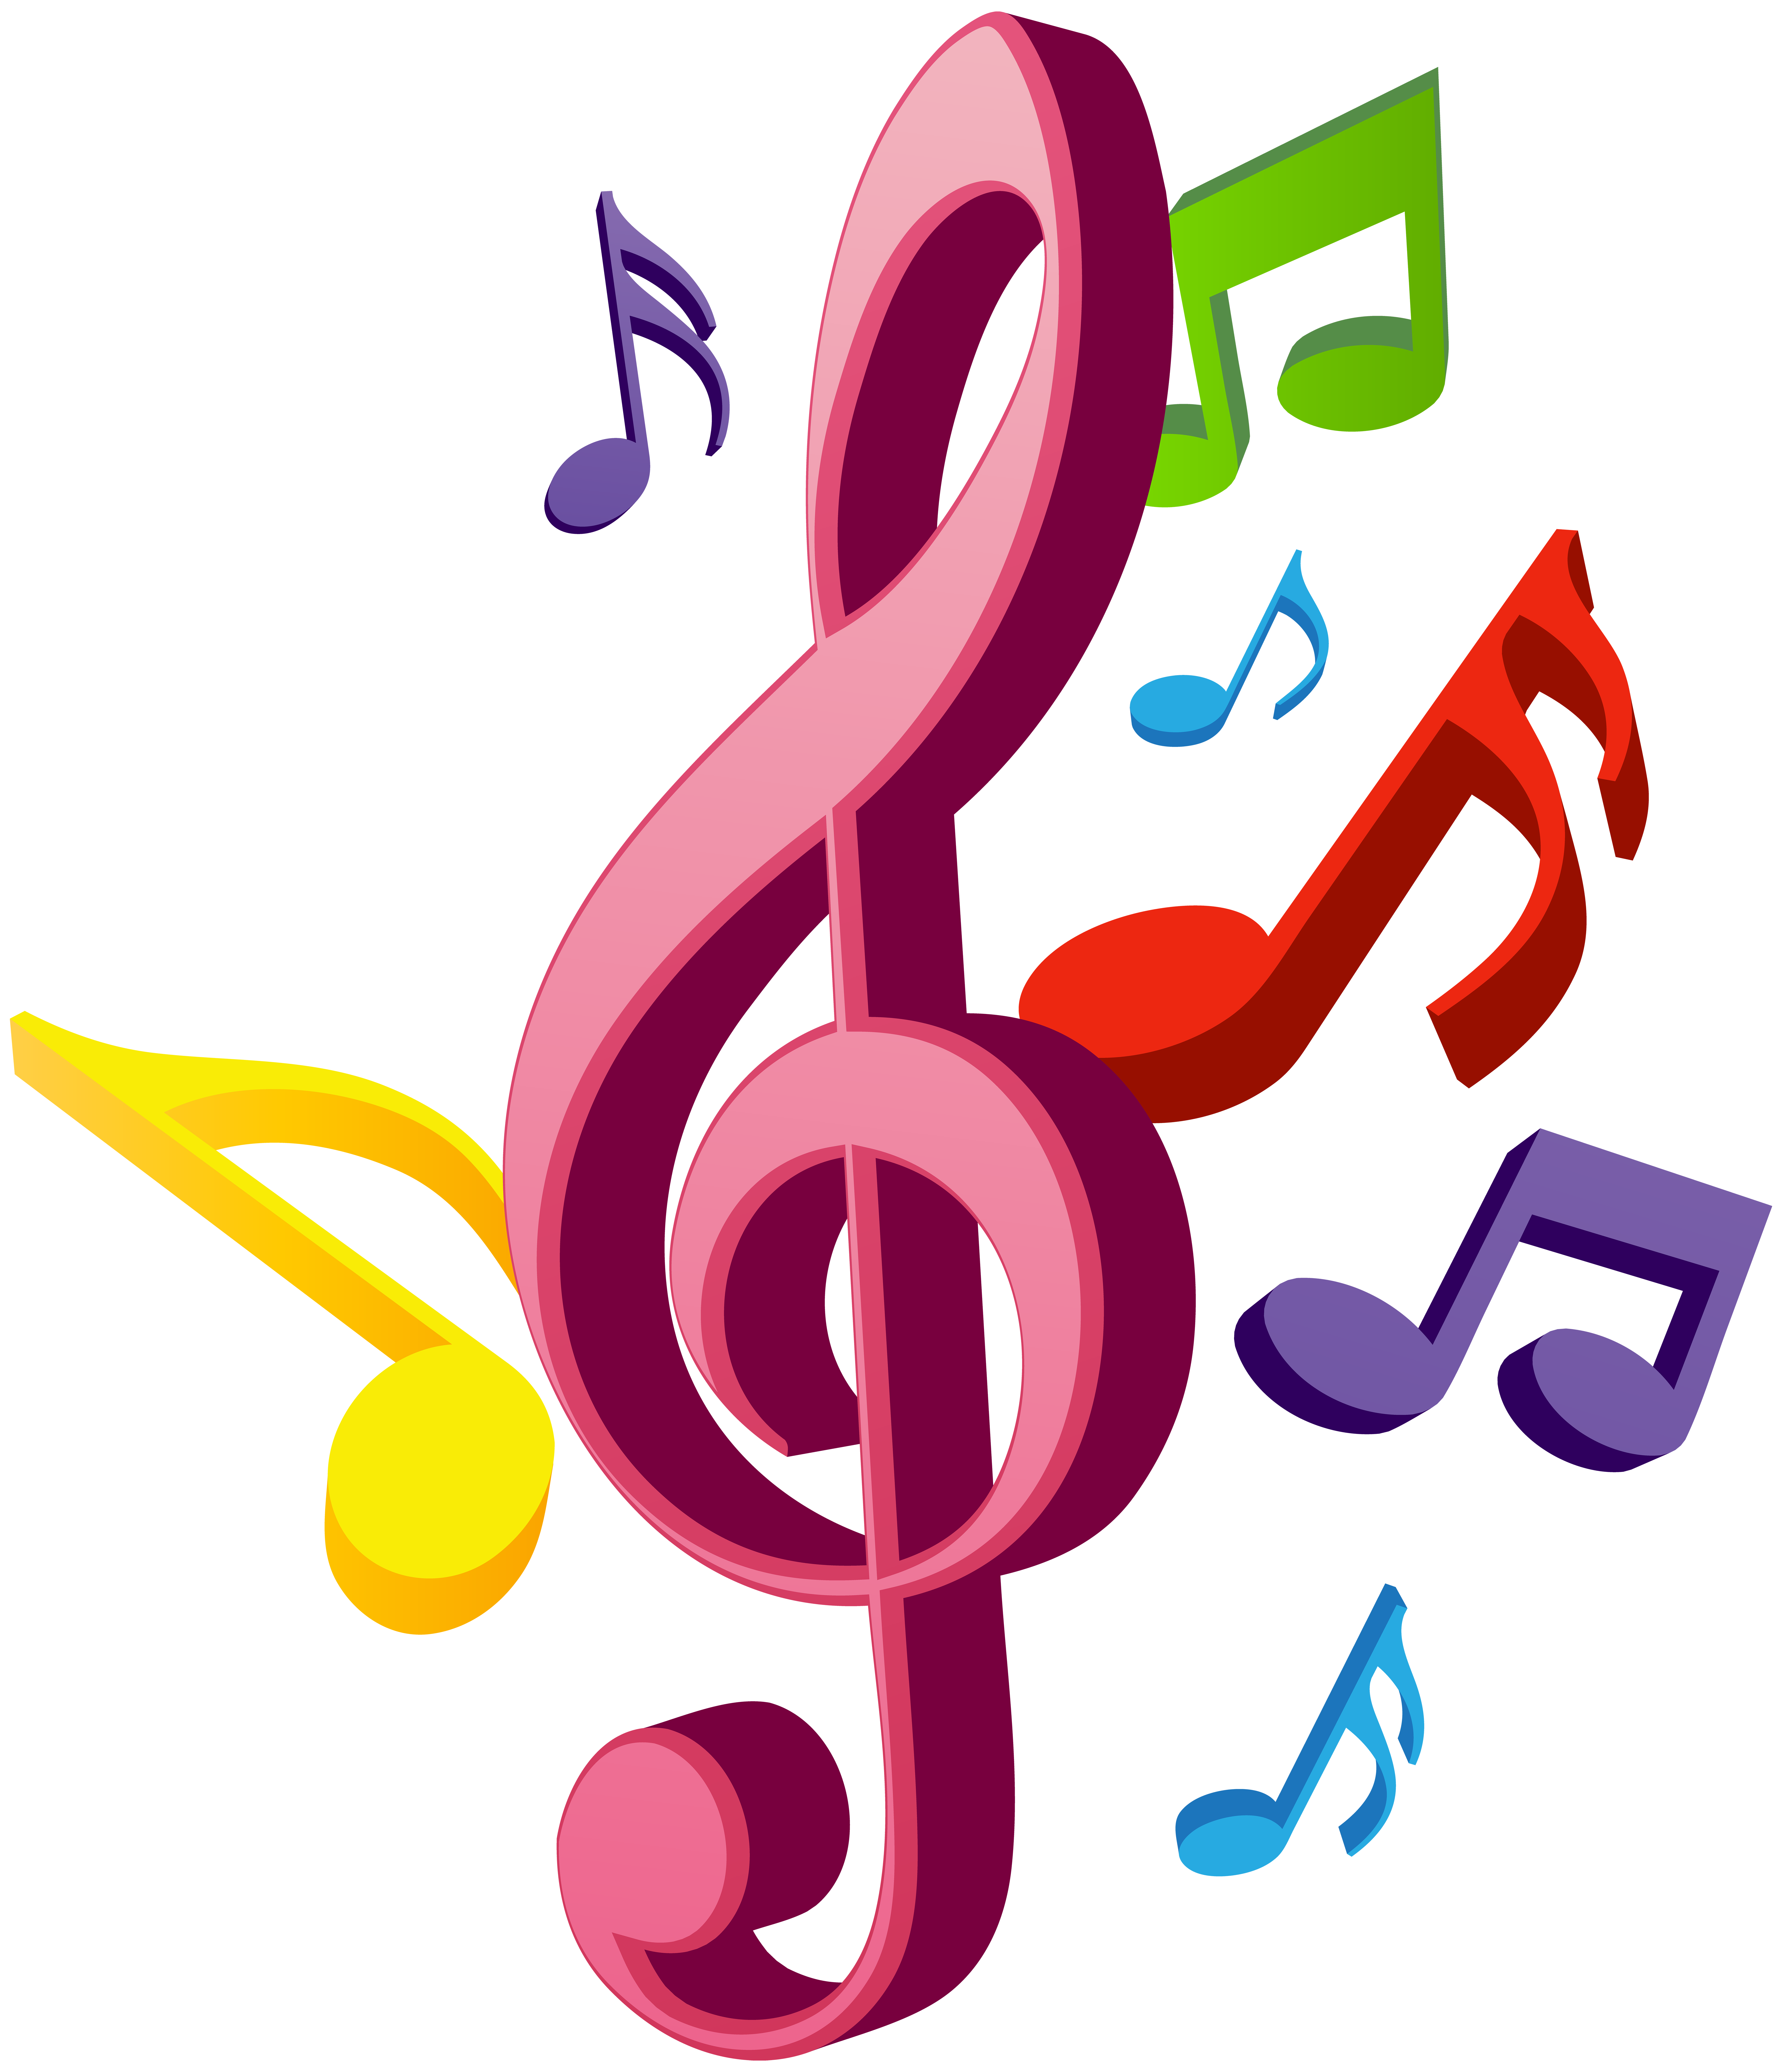 music note clipart christmas